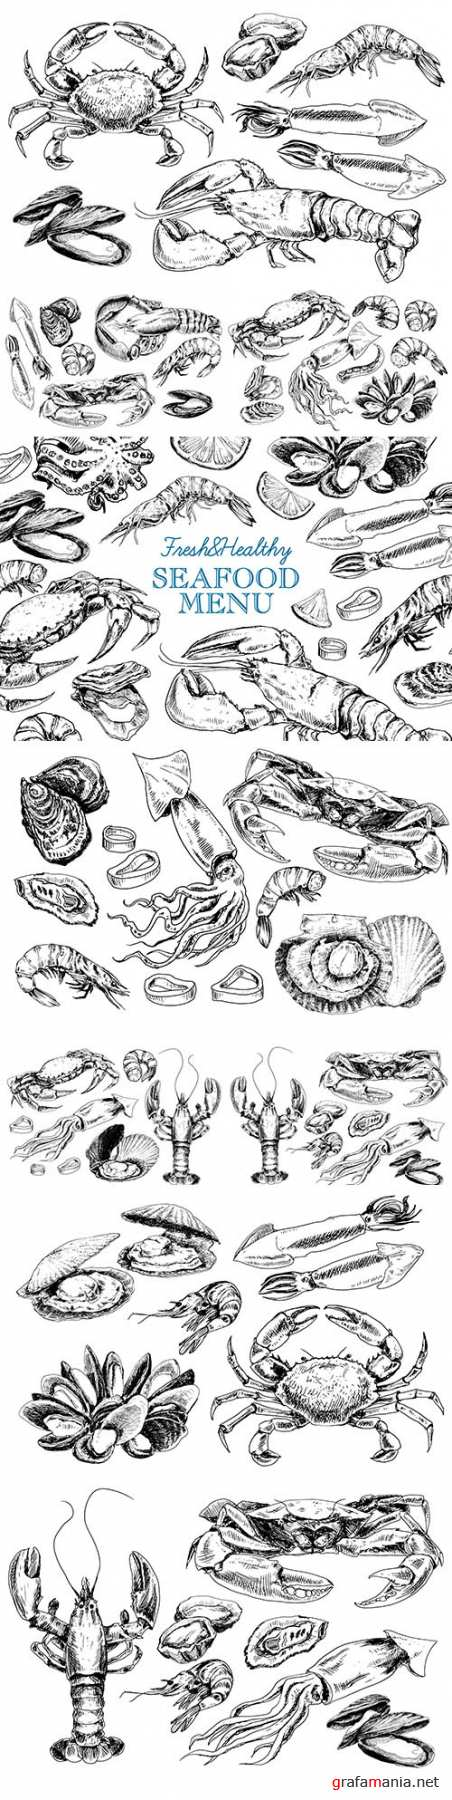 Vintage seafood menu in illustration sketch style